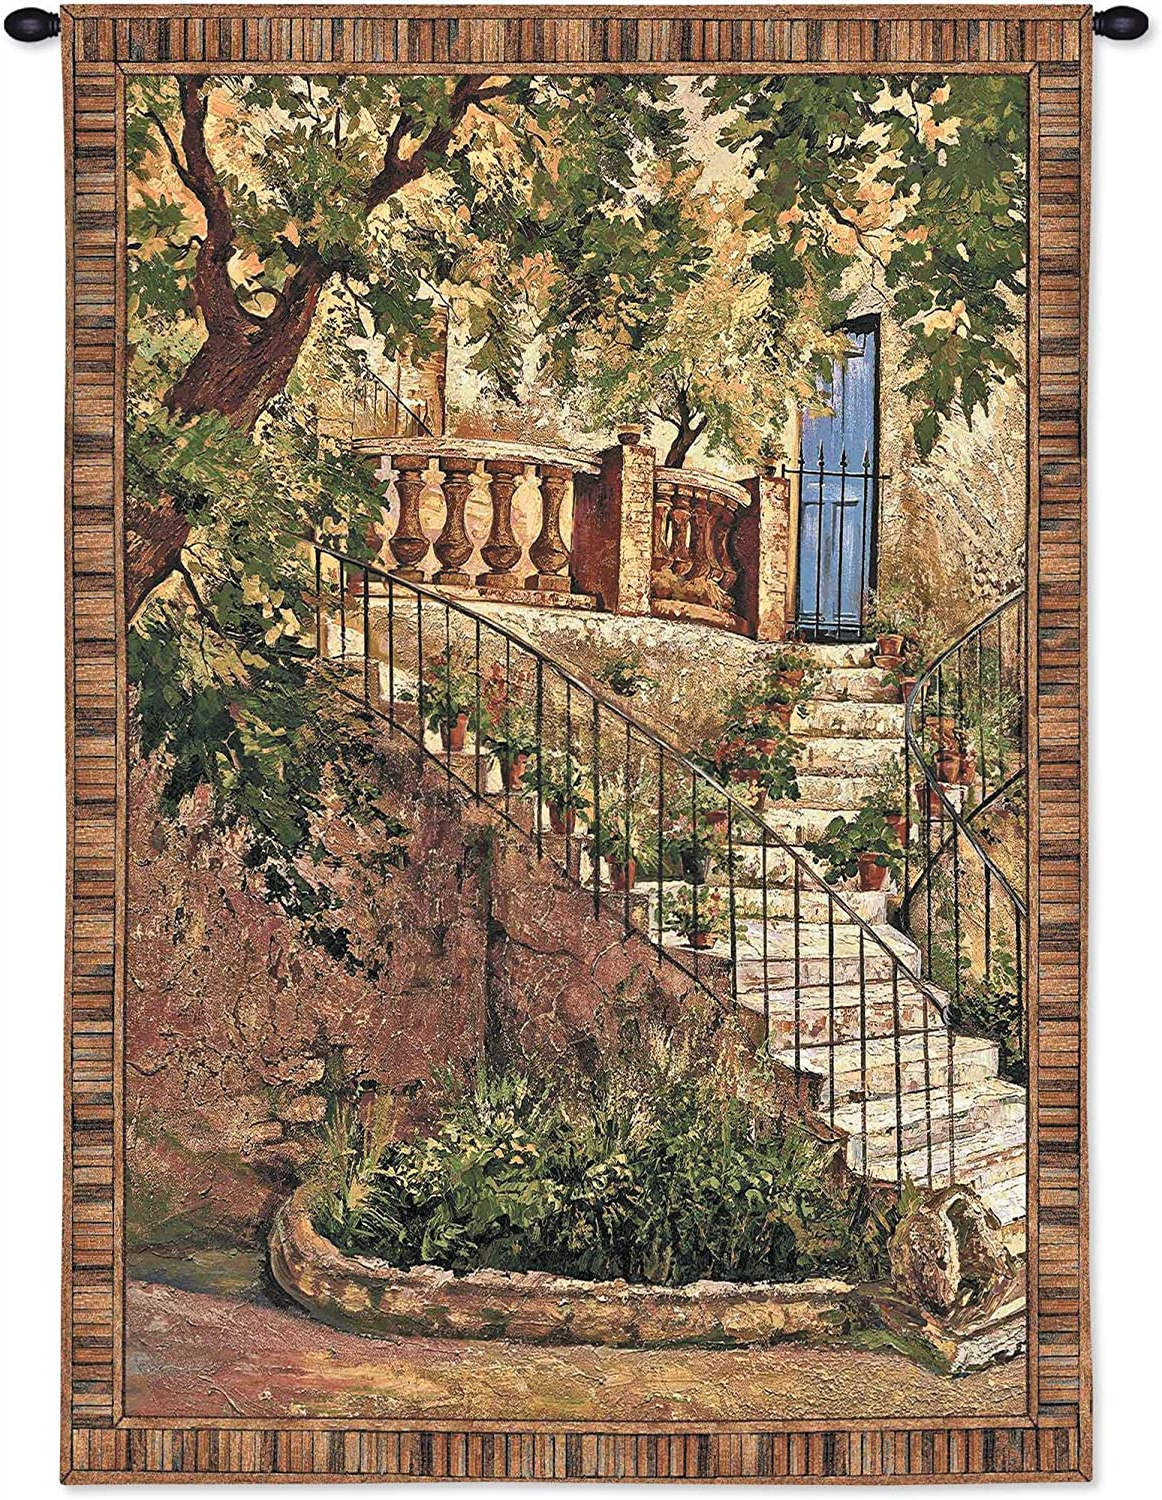 [%tuscan Villa Iroger Duvall | Woven Tapestry Wall Art Hanging | Rustic Italian Steps With Foliage | 100% Cotton Usa Size 53x40 Throughout Famous Blended Fabric Bellagio Scalinata Wall Hangings|blended Fabric Bellagio Scalinata Wall Hangings For Newest Tuscan Villa Iroger Duvall | Woven Tapestry Wall Art Hanging | Rustic Italian Steps With Foliage | 100% Cotton Usa Size 53x40|latest Blended Fabric Bellagio Scalinata Wall Hangings Within Tuscan Villa Iroger Duvall | Woven Tapestry Wall Art Hanging | Rustic Italian Steps With Foliage | 100% Cotton Usa Size 53x40|popular Tuscan Villa Iroger Duvall | Woven Tapestry Wall Art Hanging | Rustic Italian Steps With Foliage | 100% Cotton Usa Size 53x40 Inside Blended Fabric Bellagio Scalinata Wall Hangings%] (View 8 of 20)